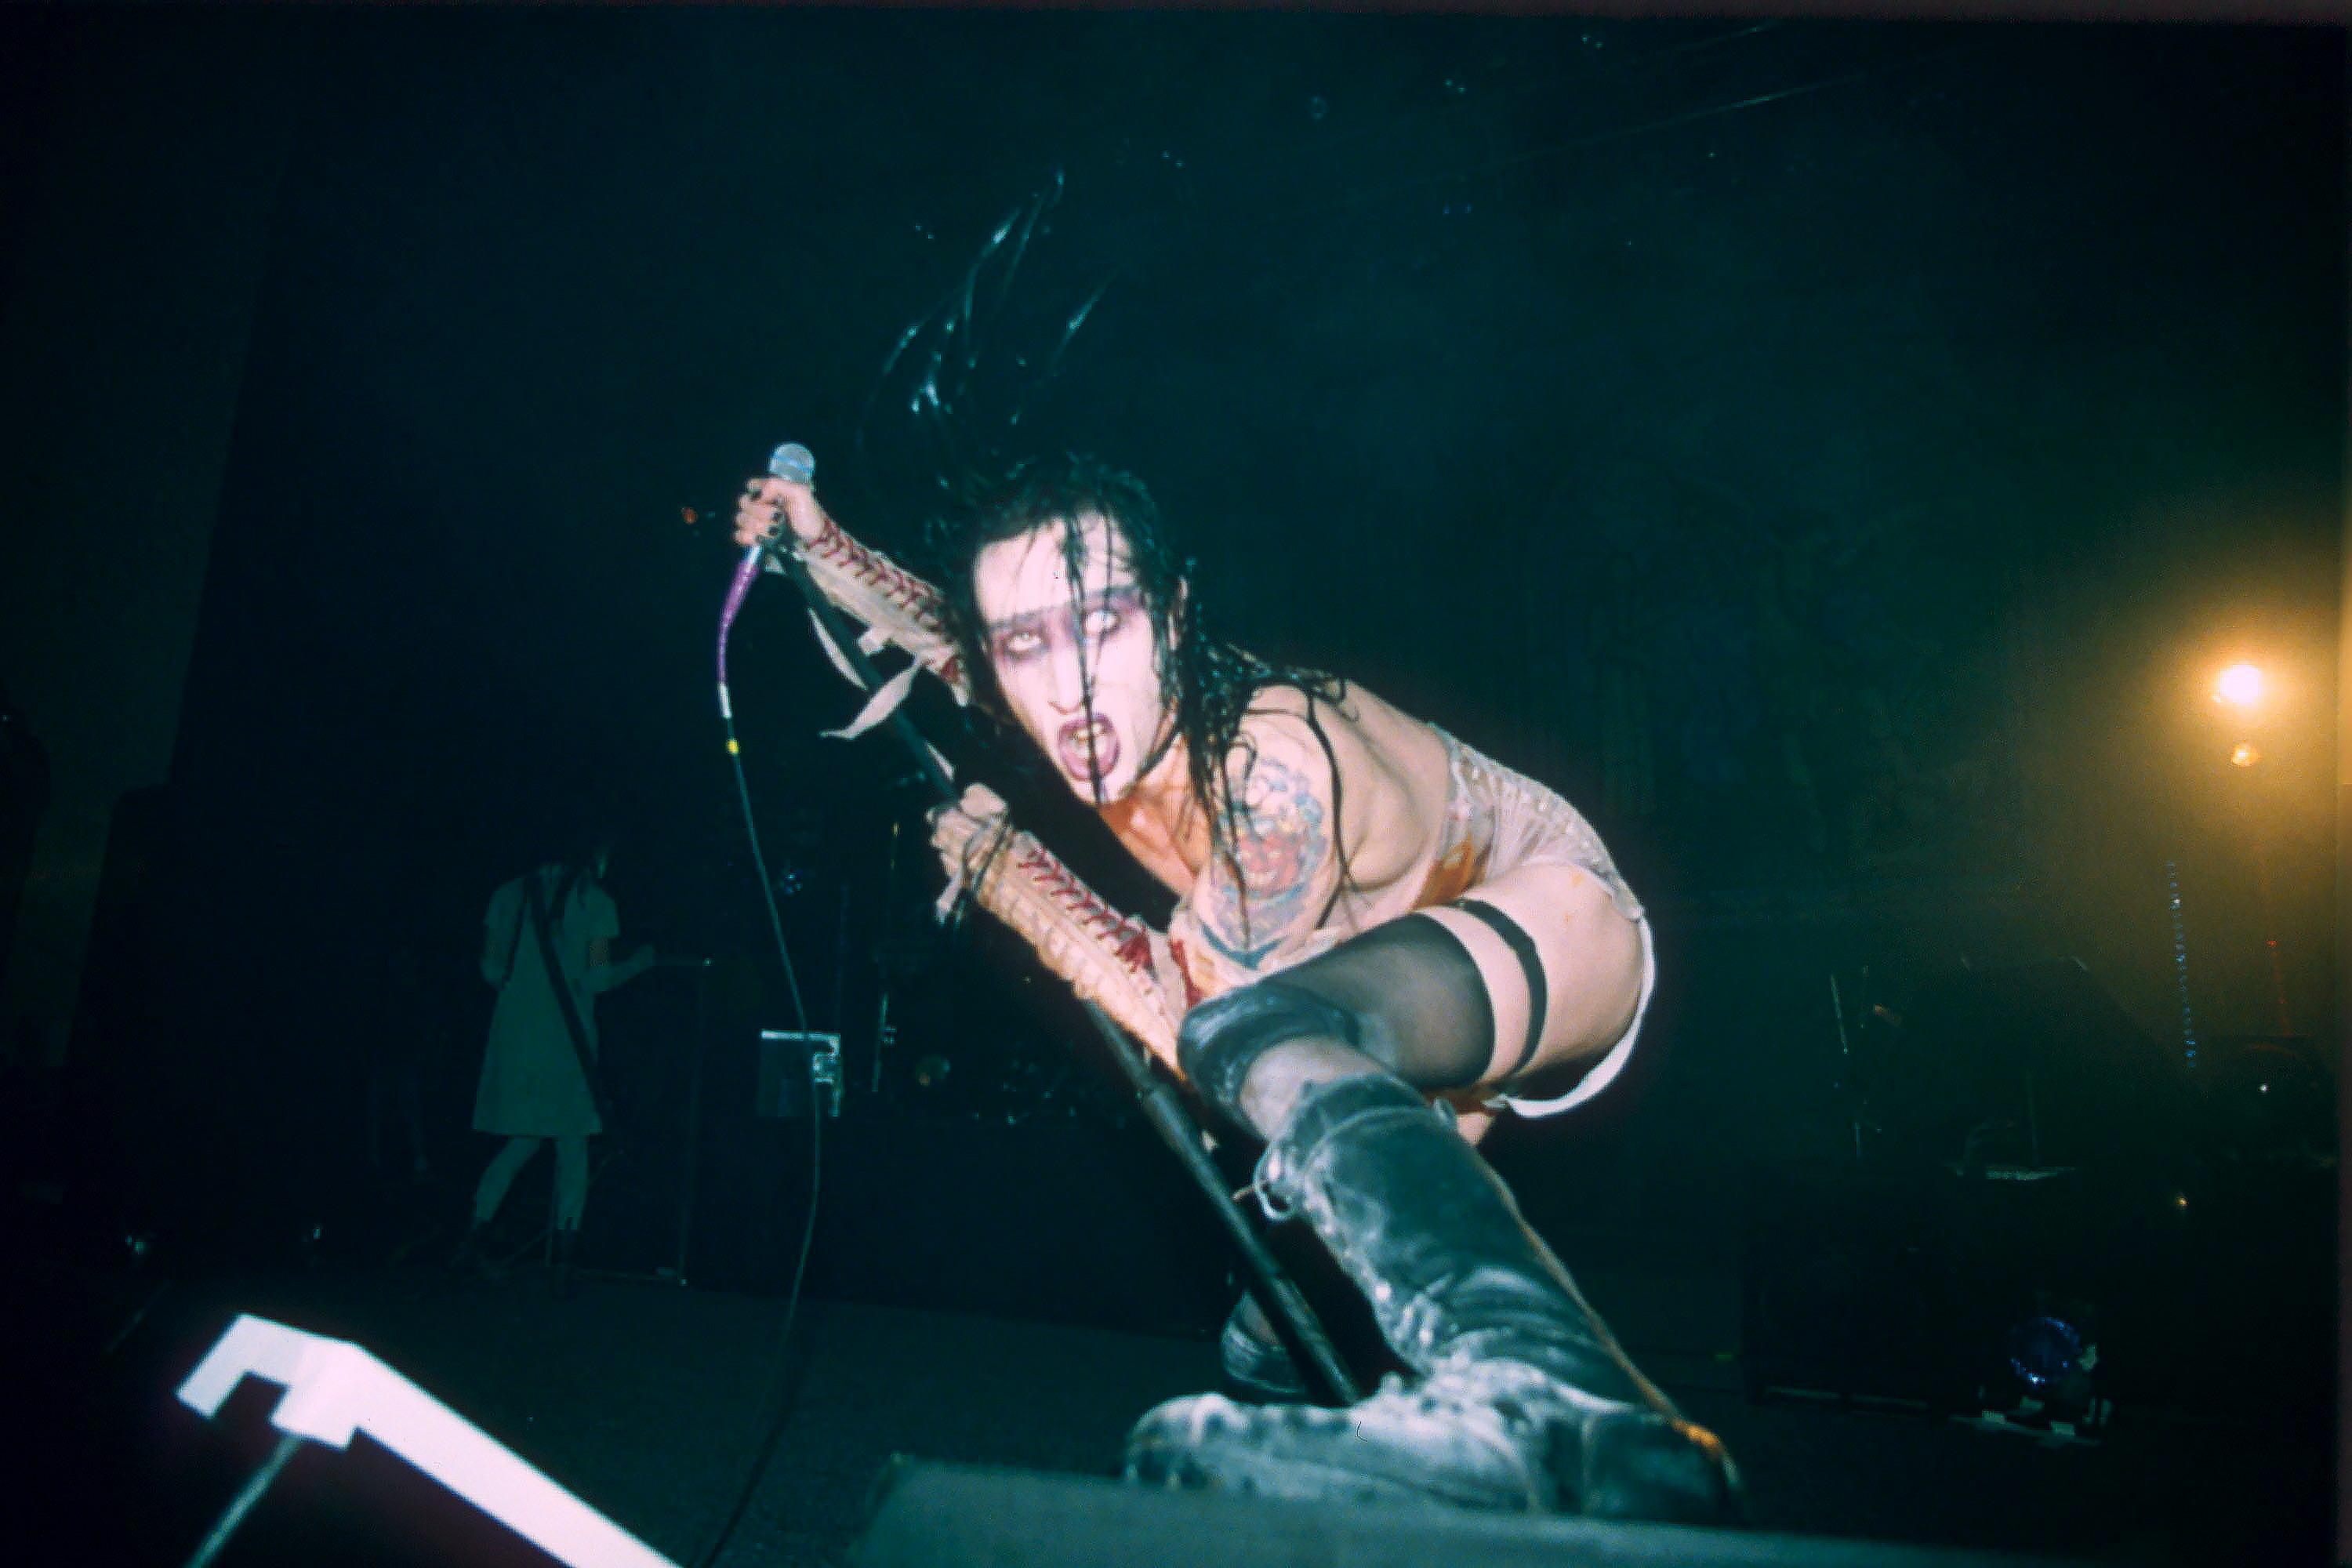 Marilyn manson sex onstage